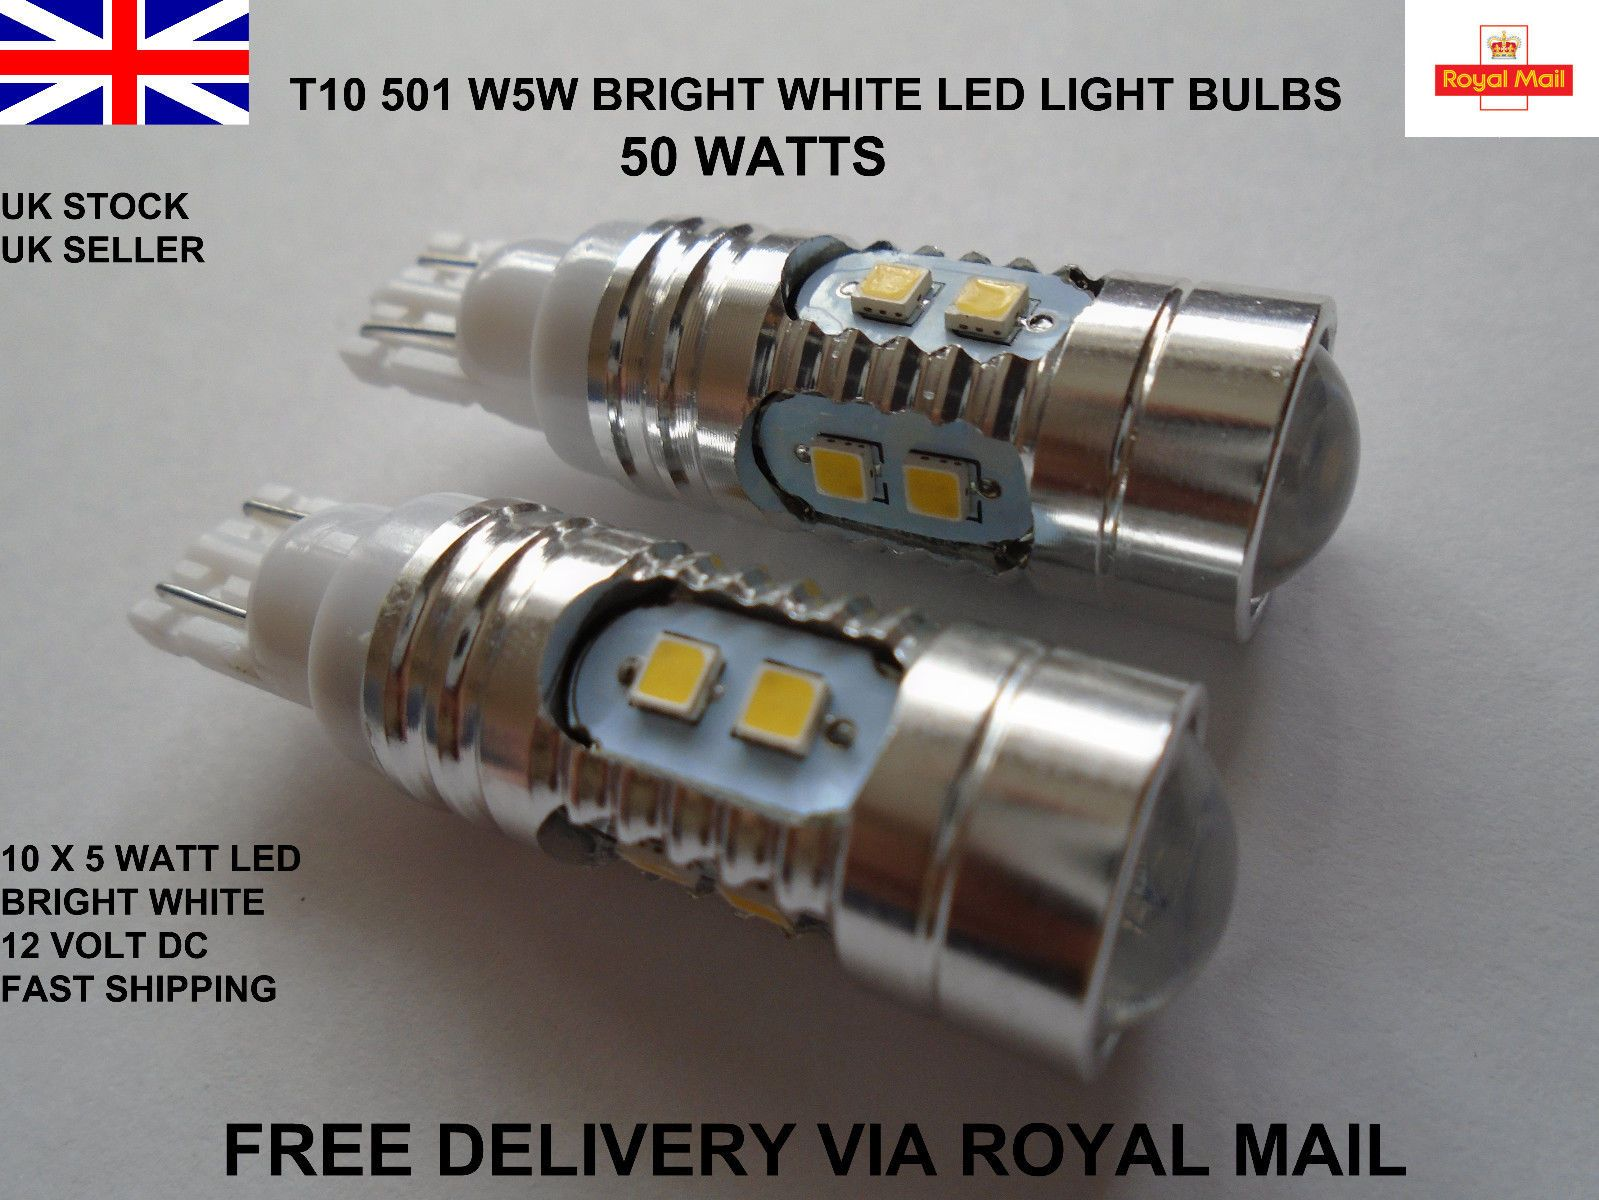 2x T10 501 W5w Wedge Cree Led Smd Bright Xenon White Light Bulbs Lamps 12v 50w White Light Bulbs Light Bulb Lamp Bright White Led